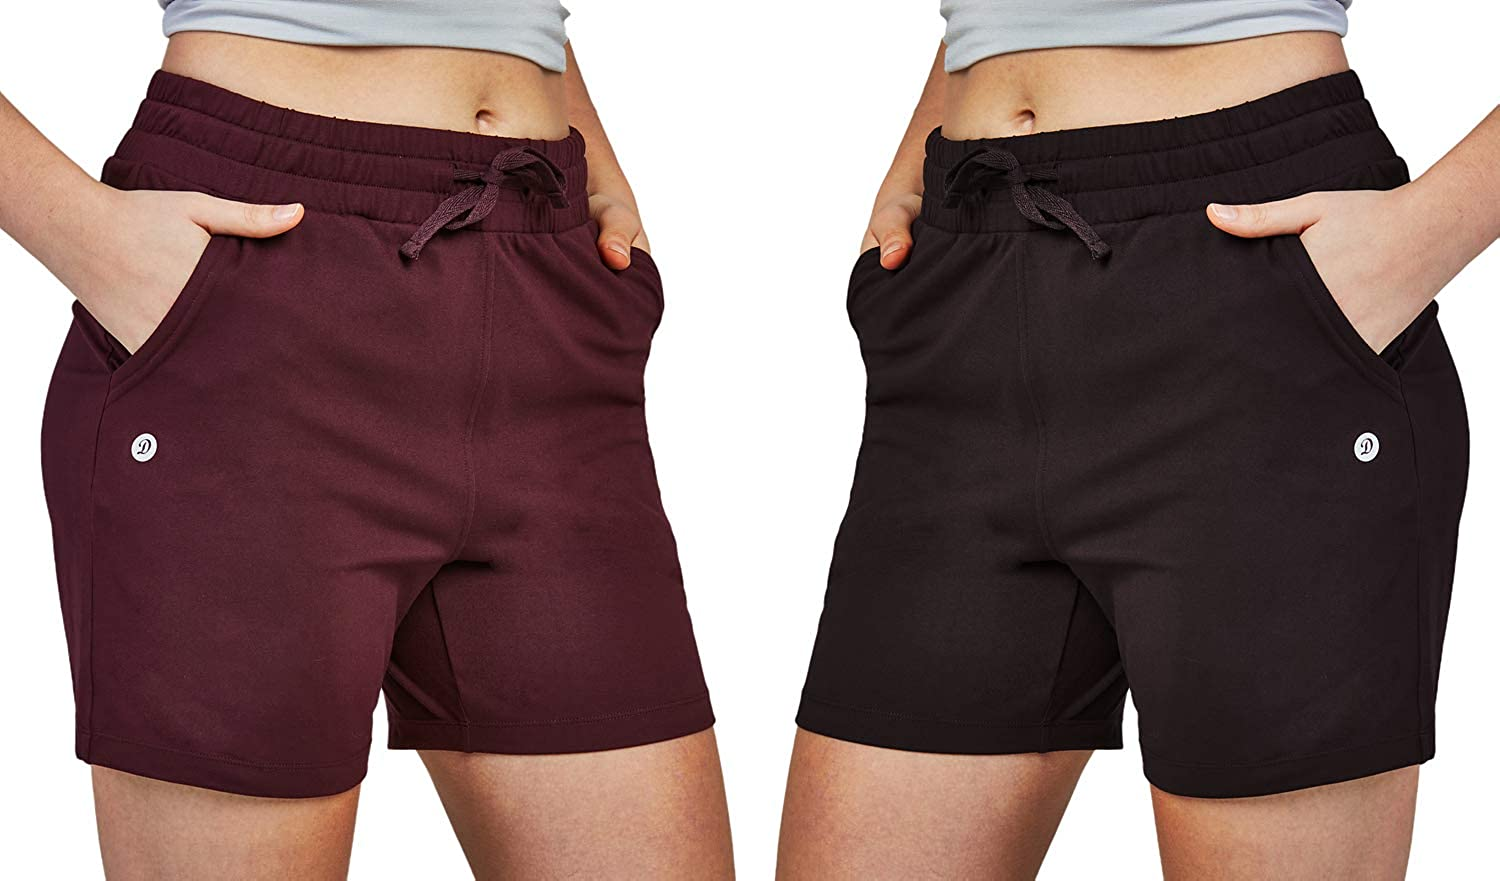 DEVOPS Women's Athletic Workout gift Sweat Pajama Short SEAL limited product Shorts Lounge